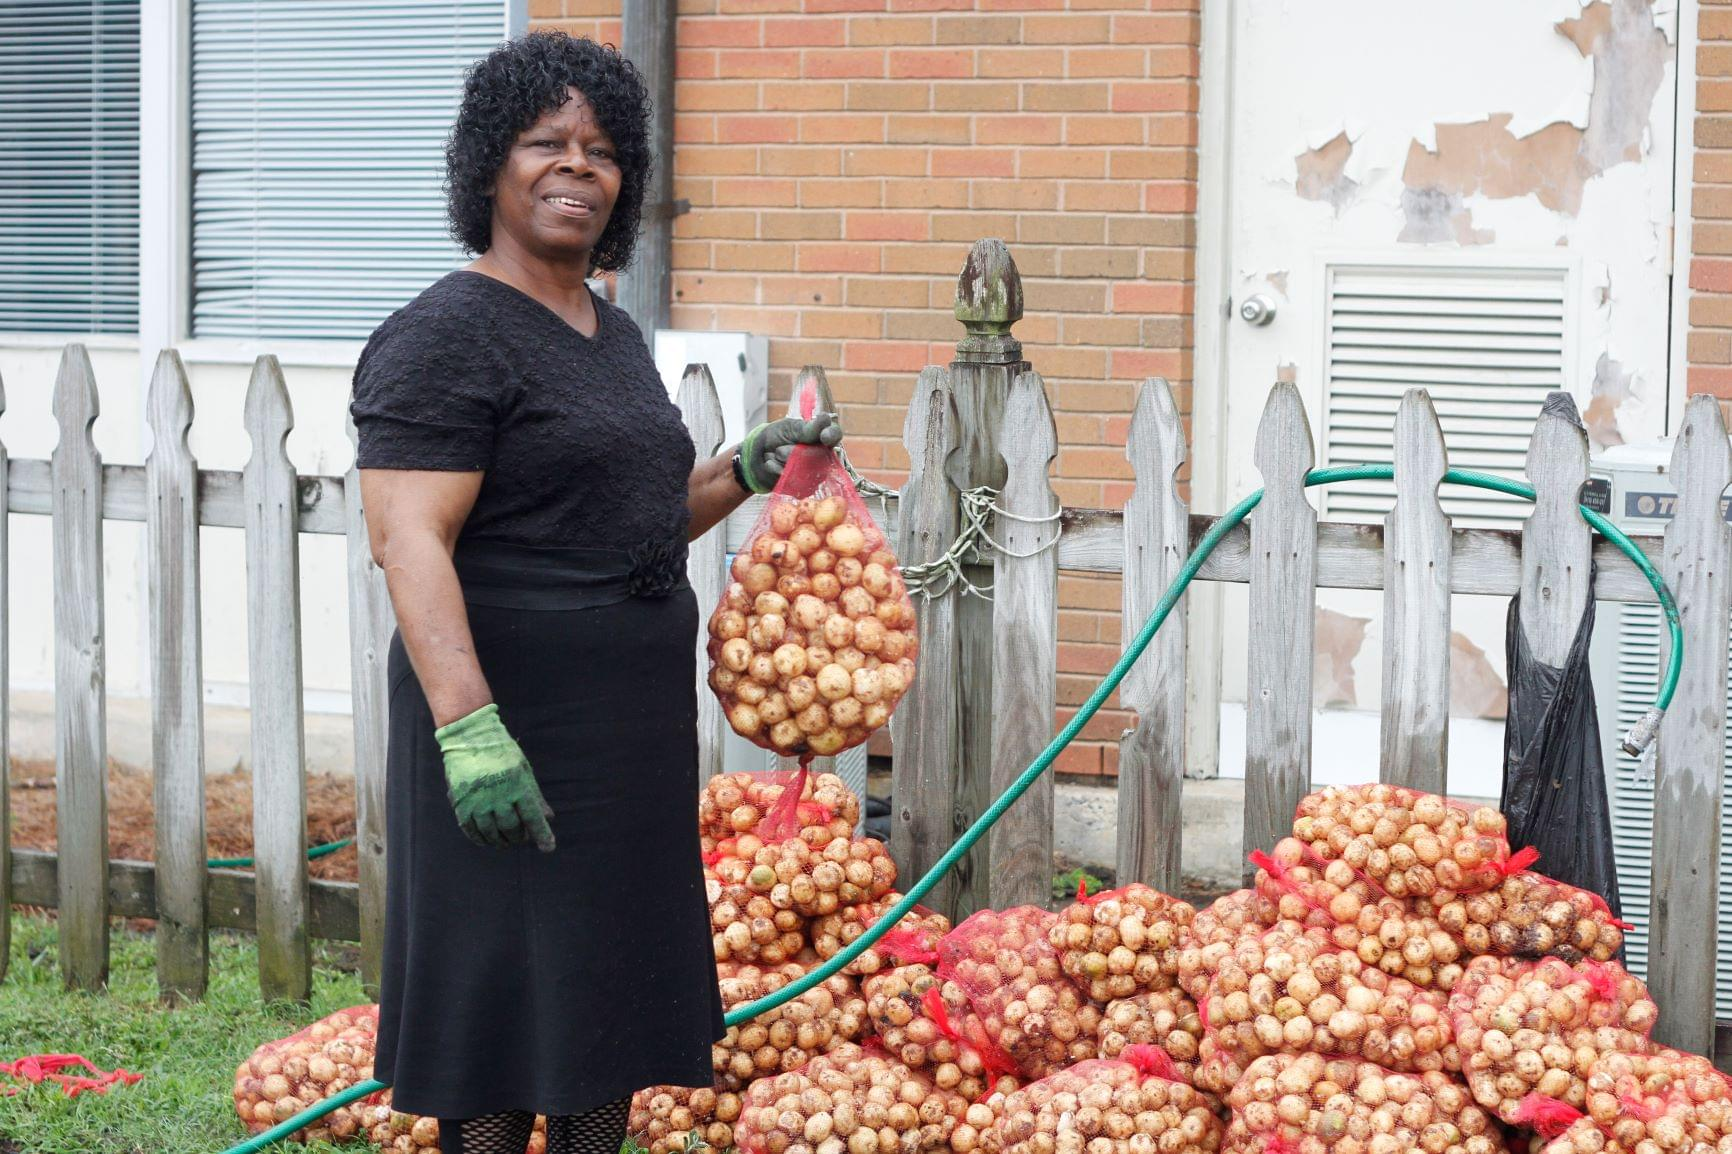 Potato Delivery In Mount Olive (PHOTO GALLERY)